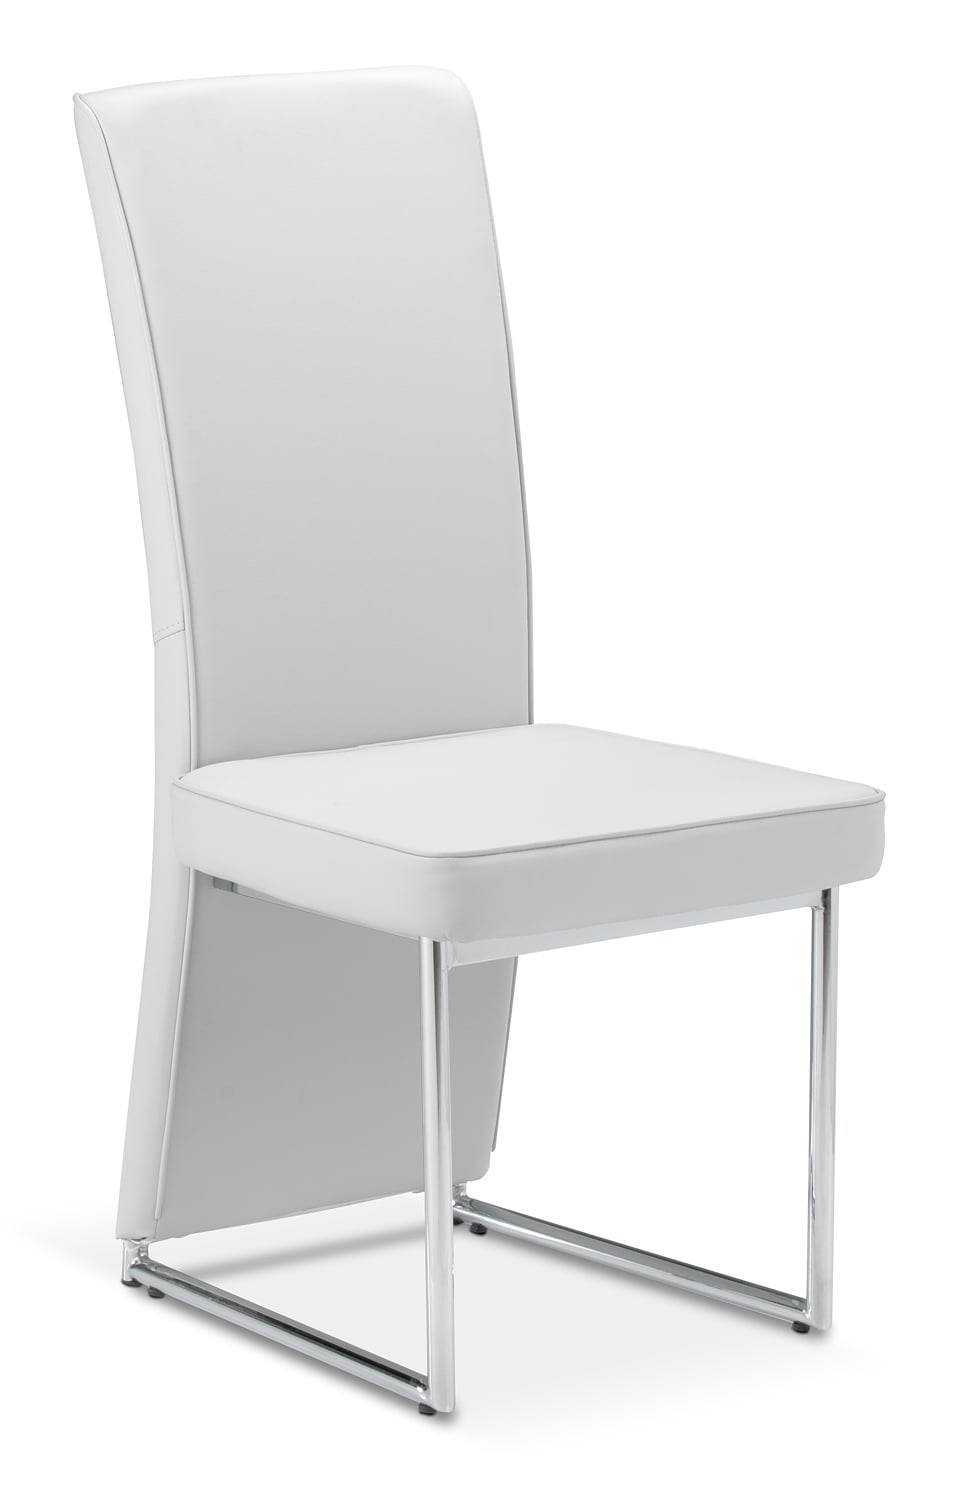 Bleecker Side Chair - Light Grey